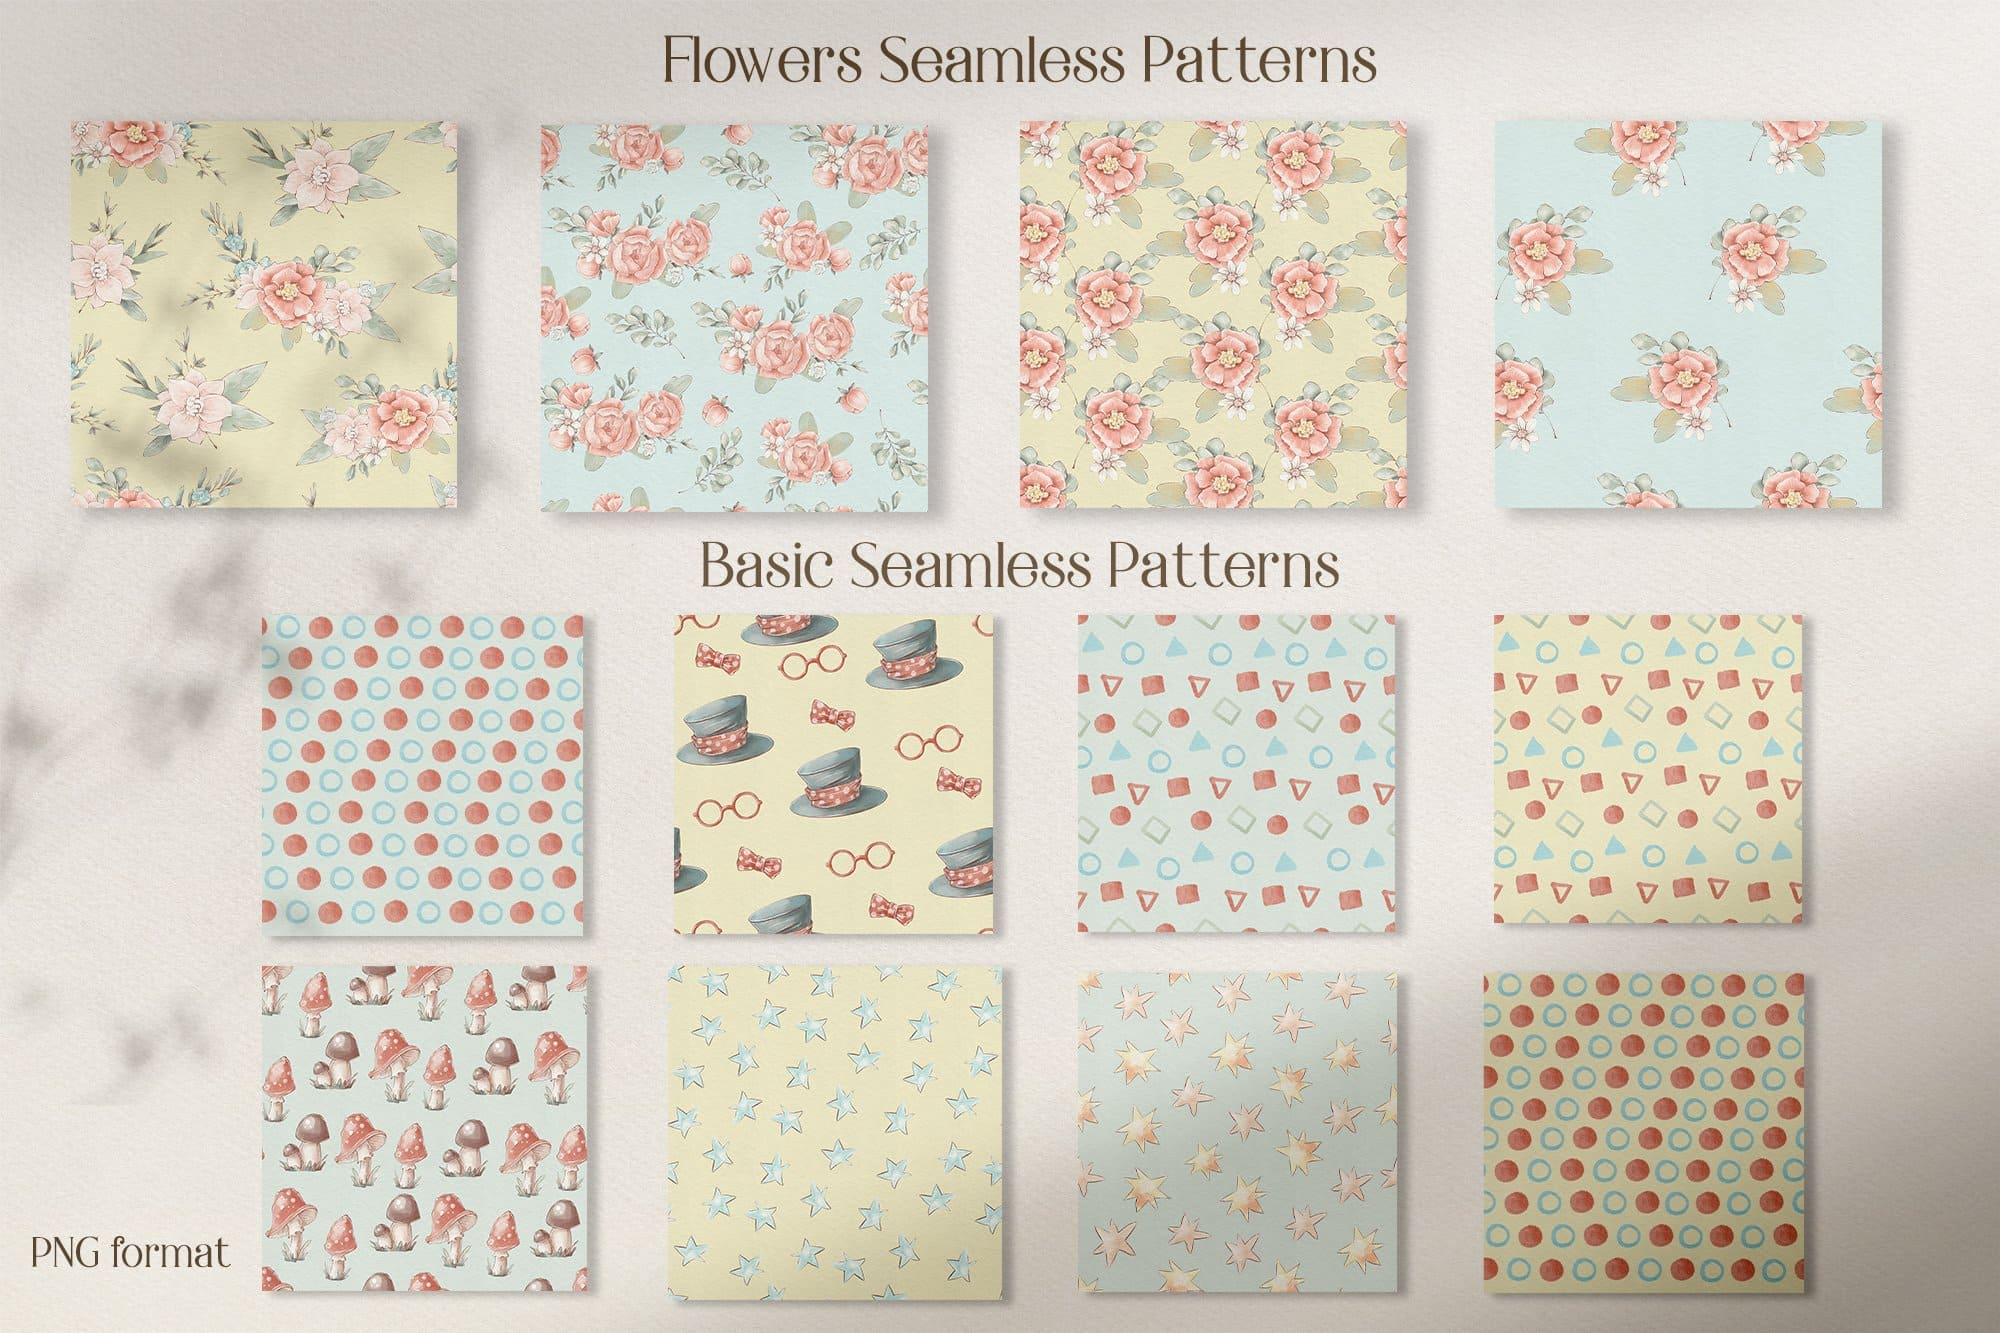 Flowers and basic seamless patterns.